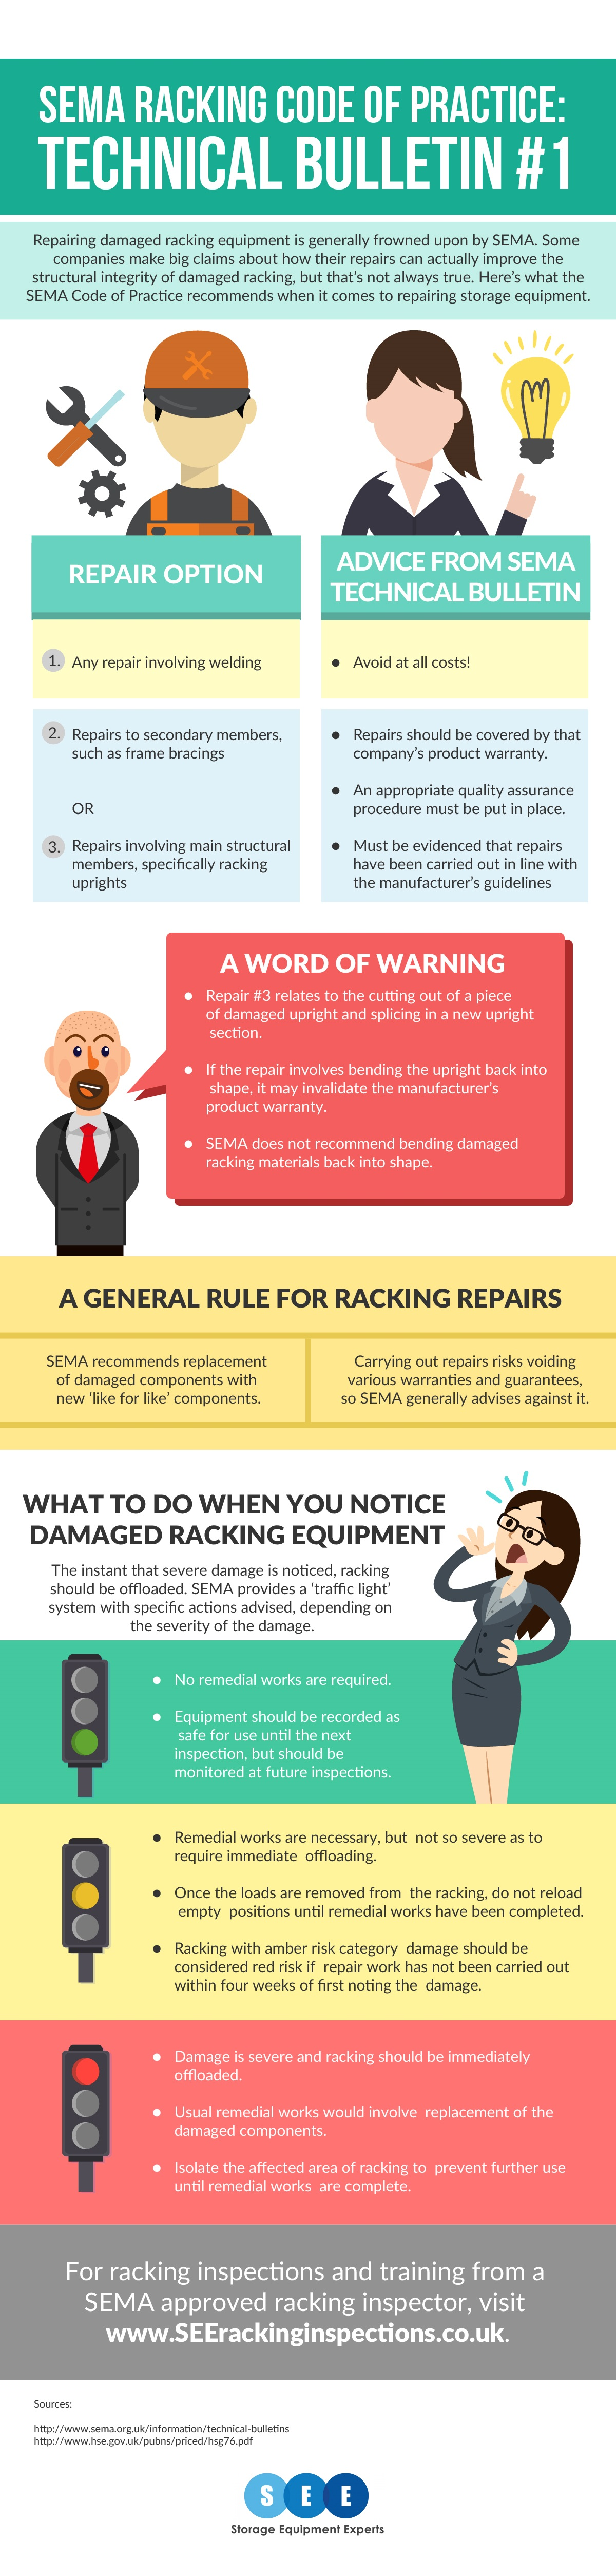 SEMA Racking code of practice: technical bulletin #1 | Storage Equipment Experts